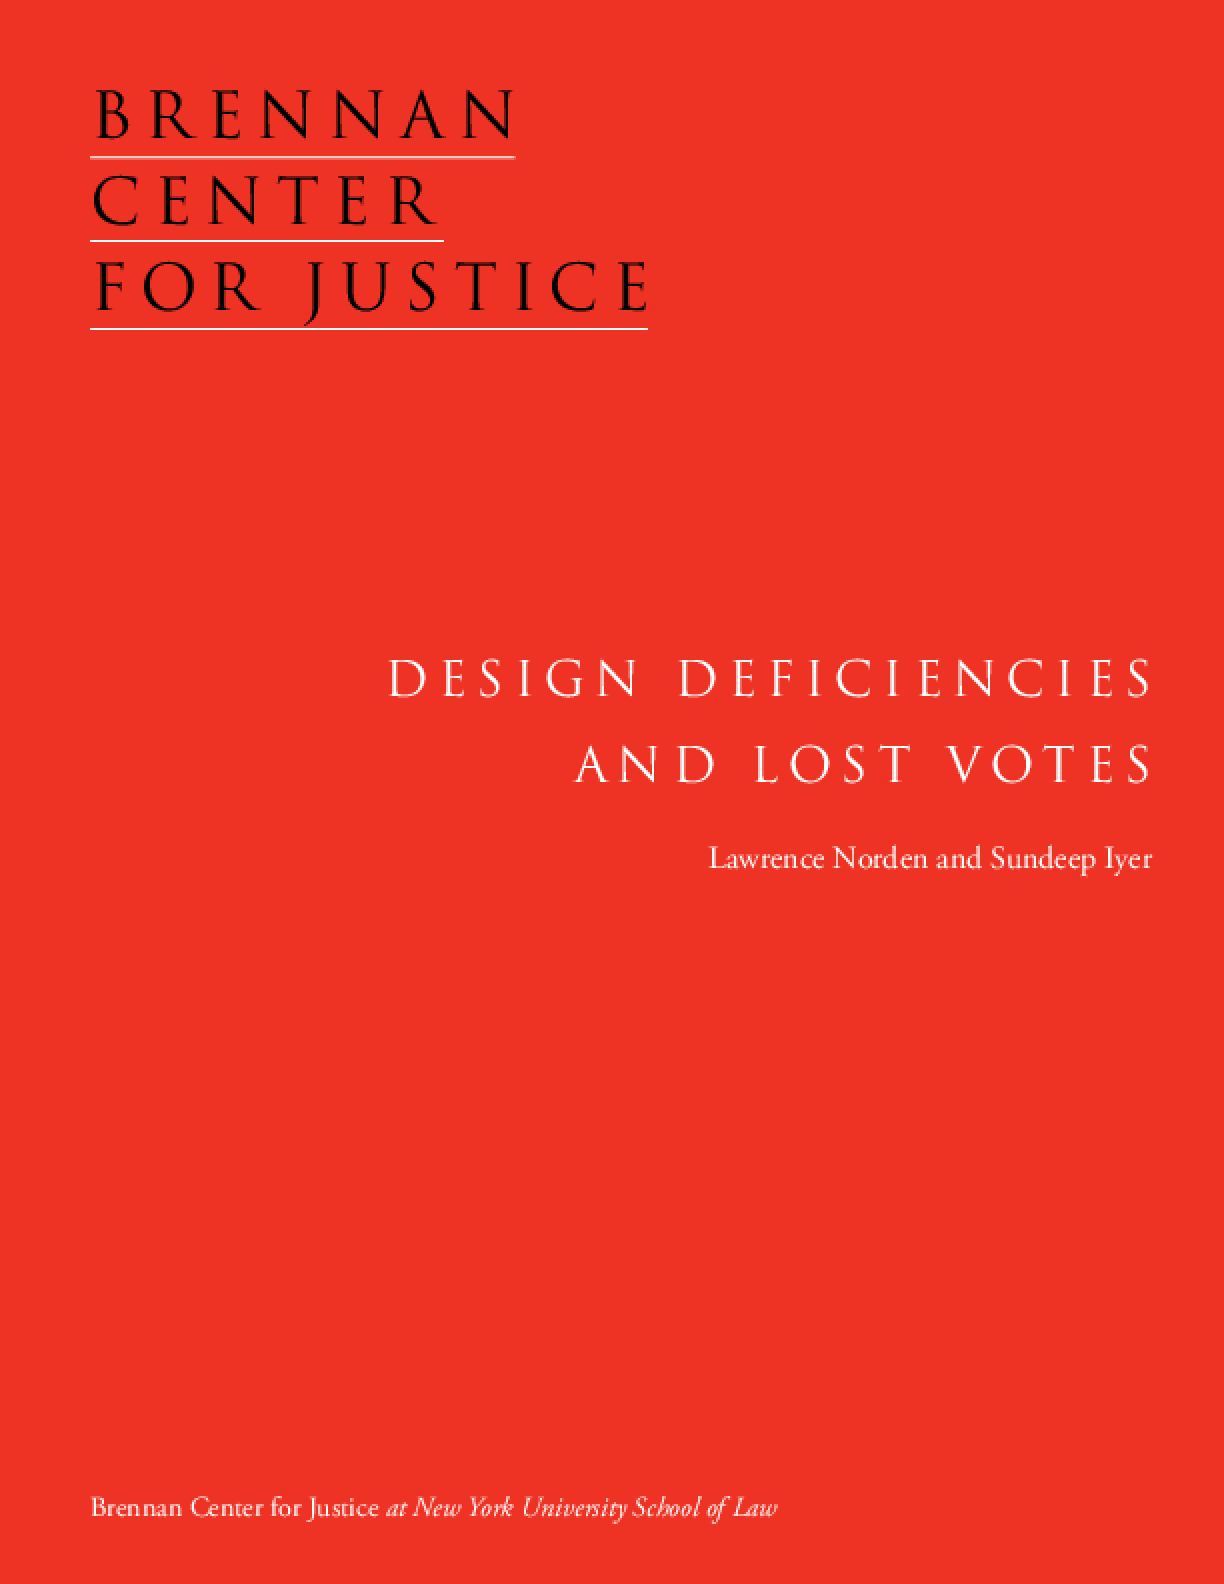 Design Deficiencies and Lost Votes